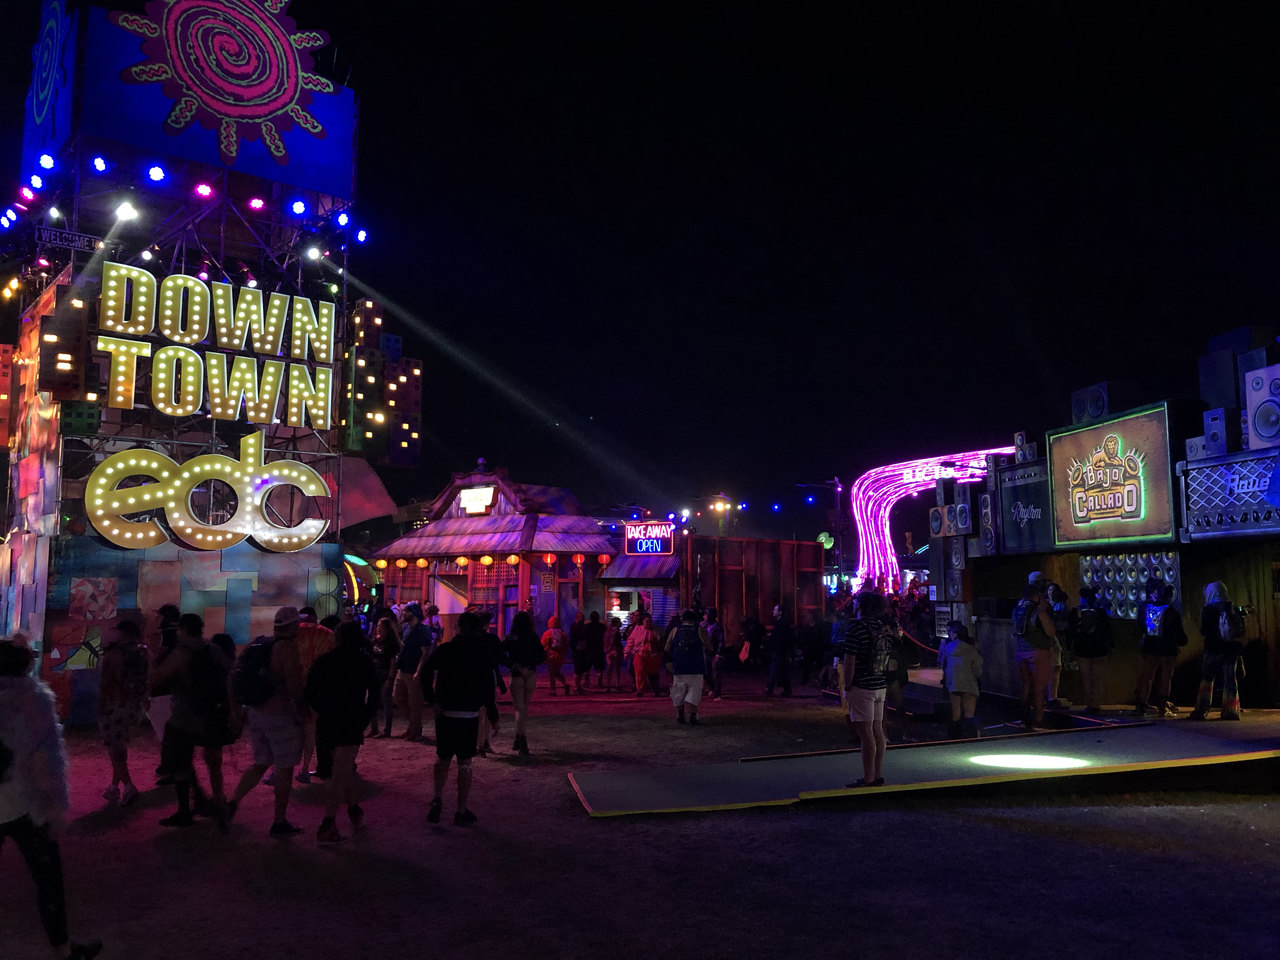 The entertainment area of EDC 2019